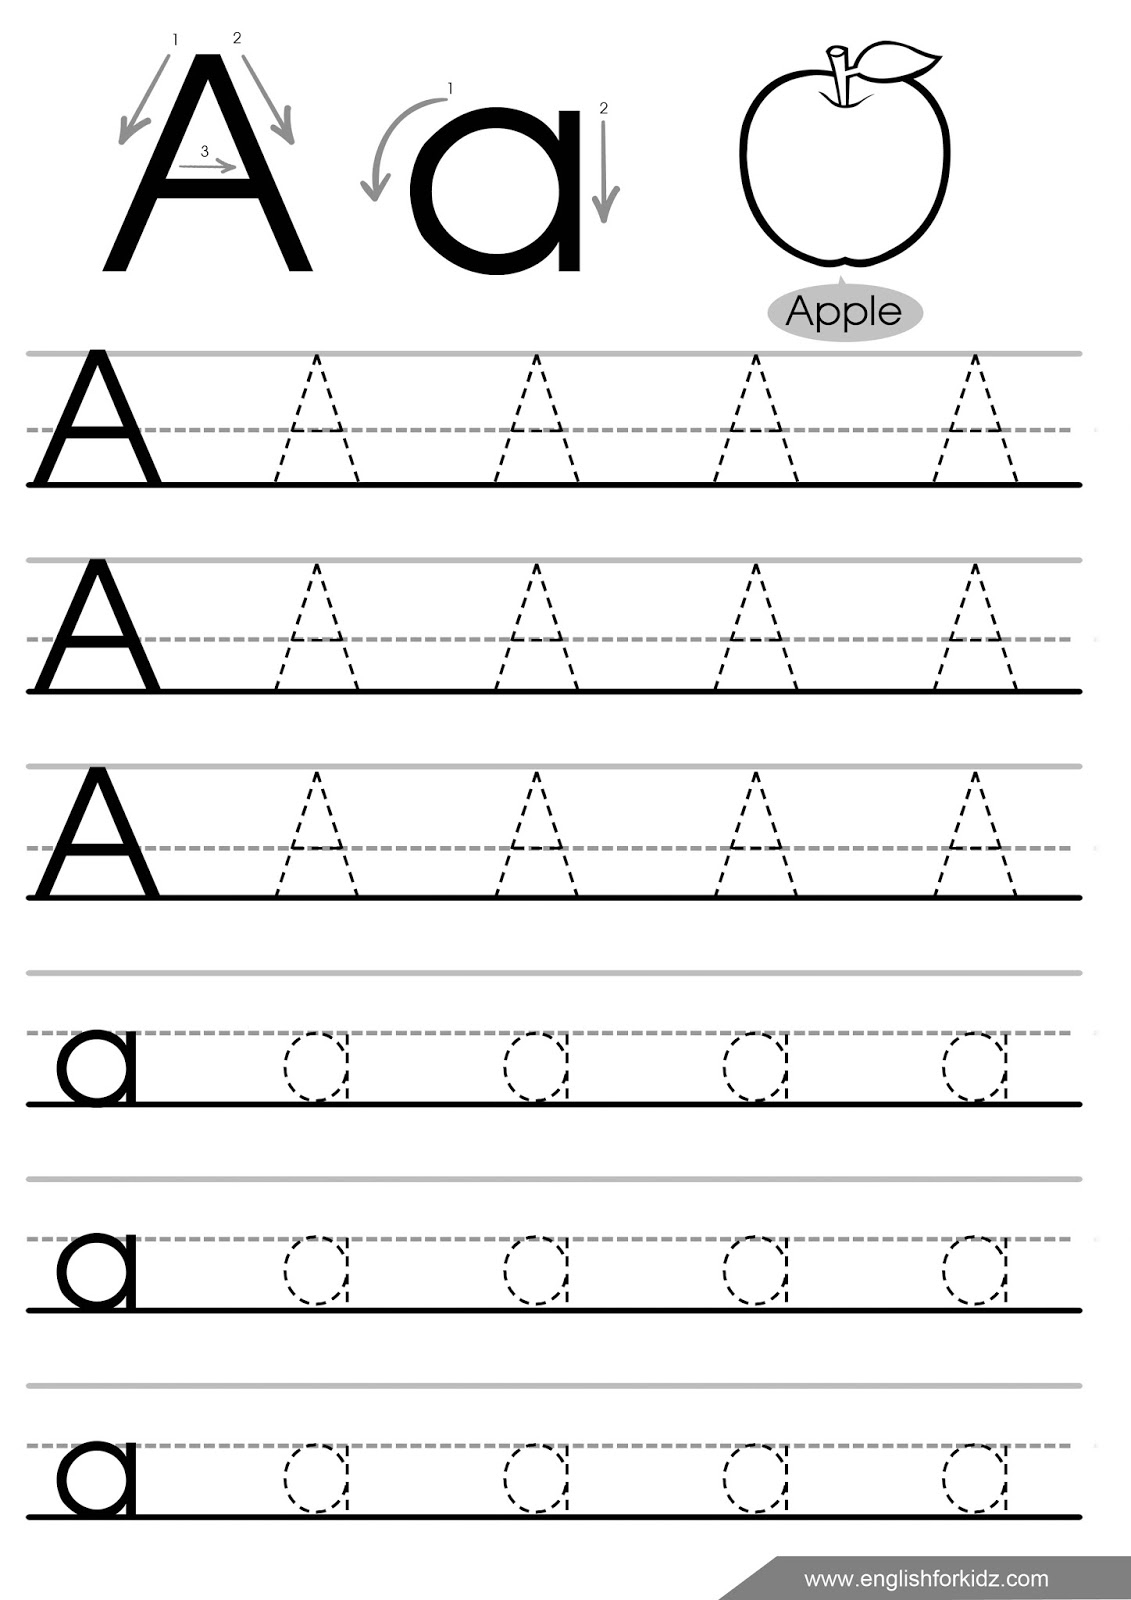 Letter Tracing Worksheets (Letters A - J) intended for Alphabet Tracing Pages